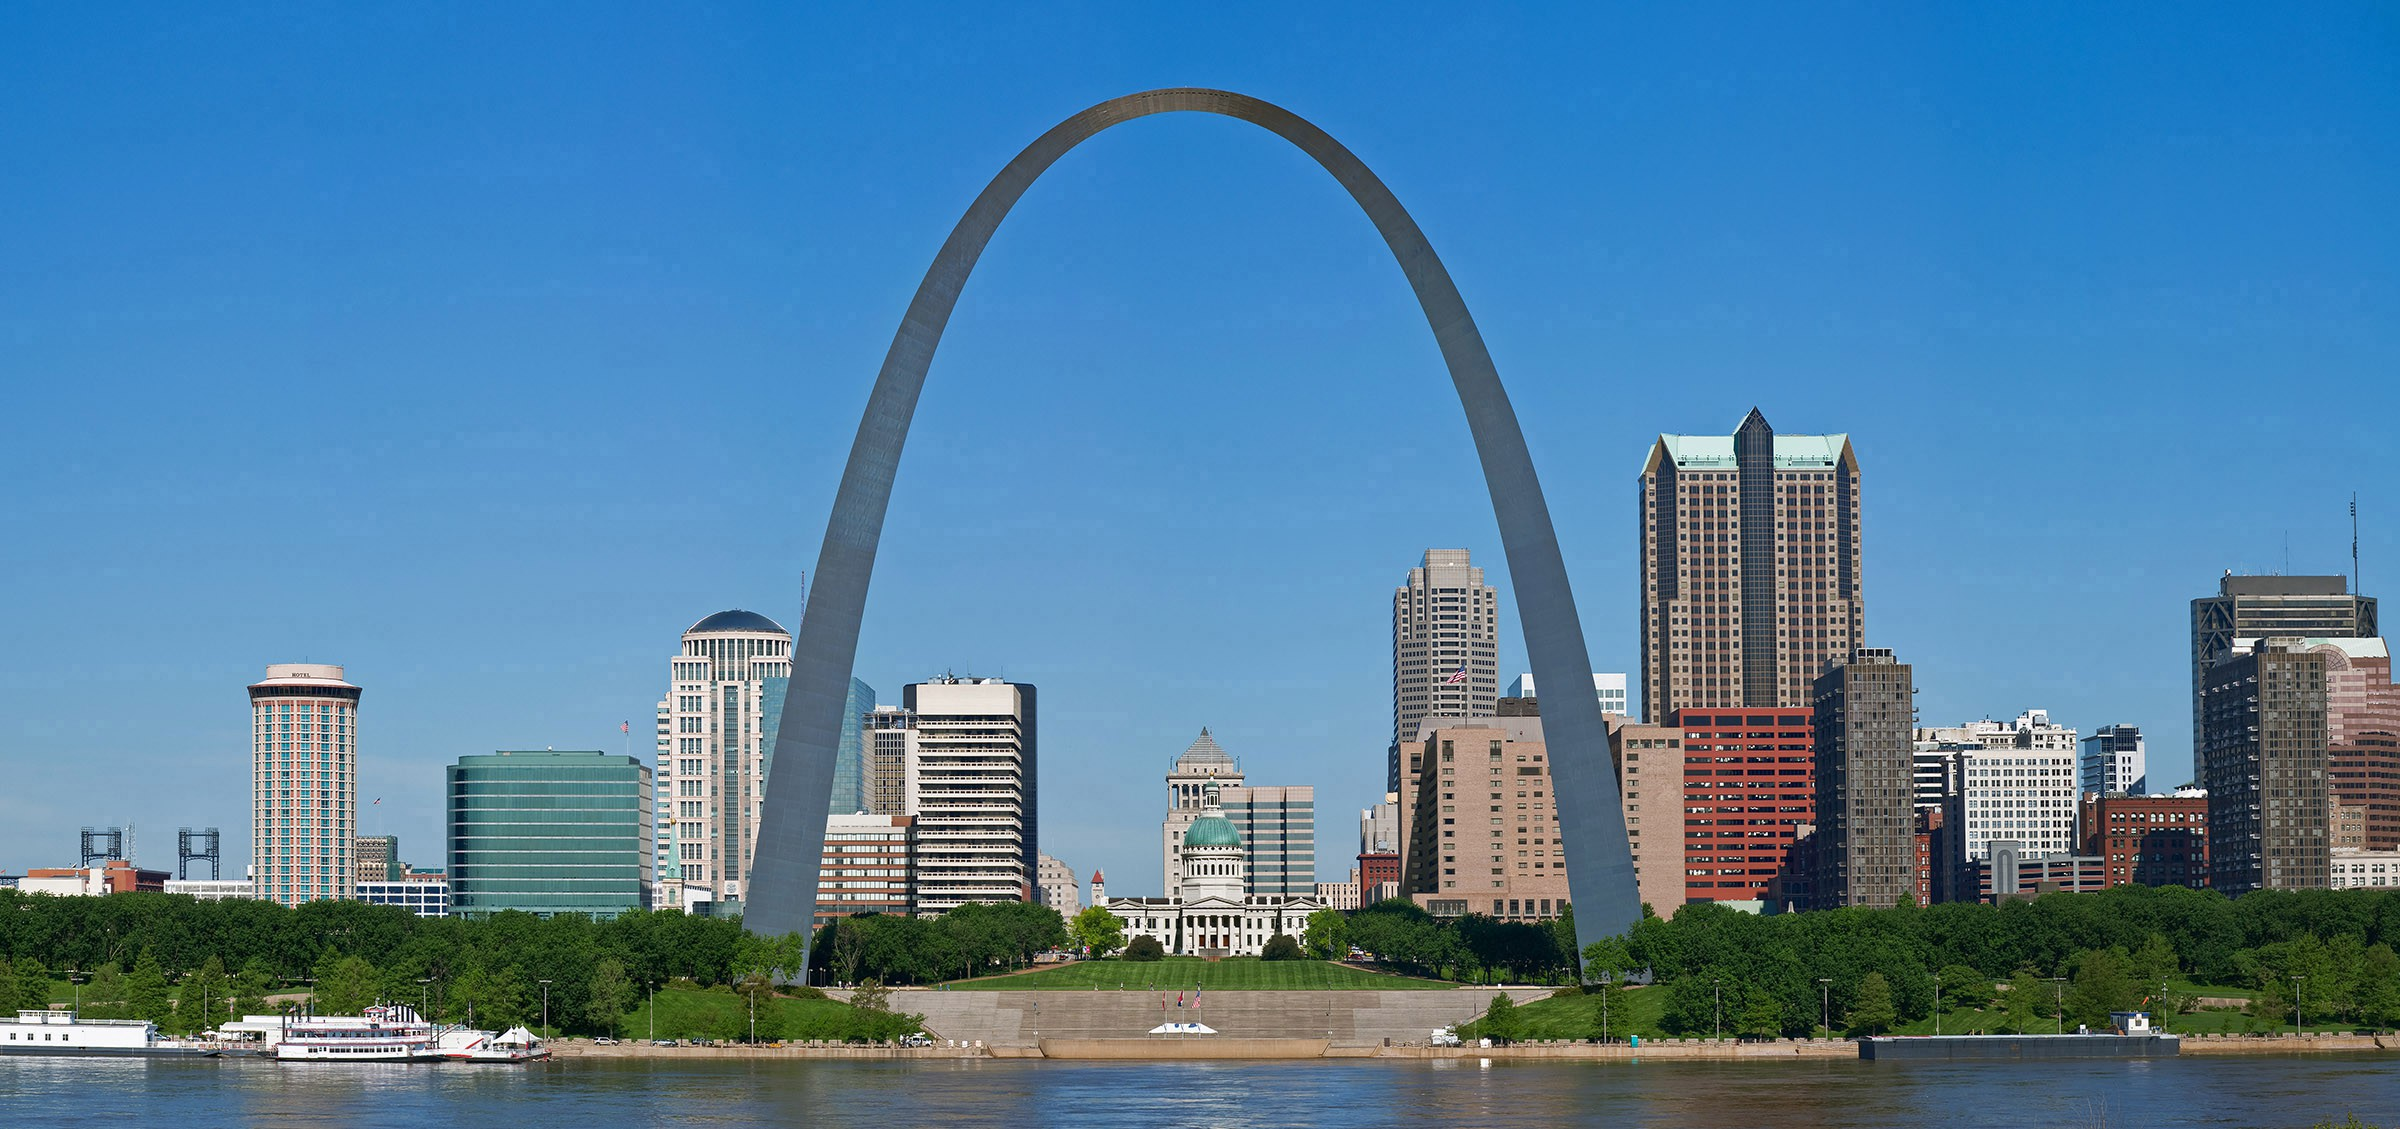 St. Louis Gateway to the West Arch